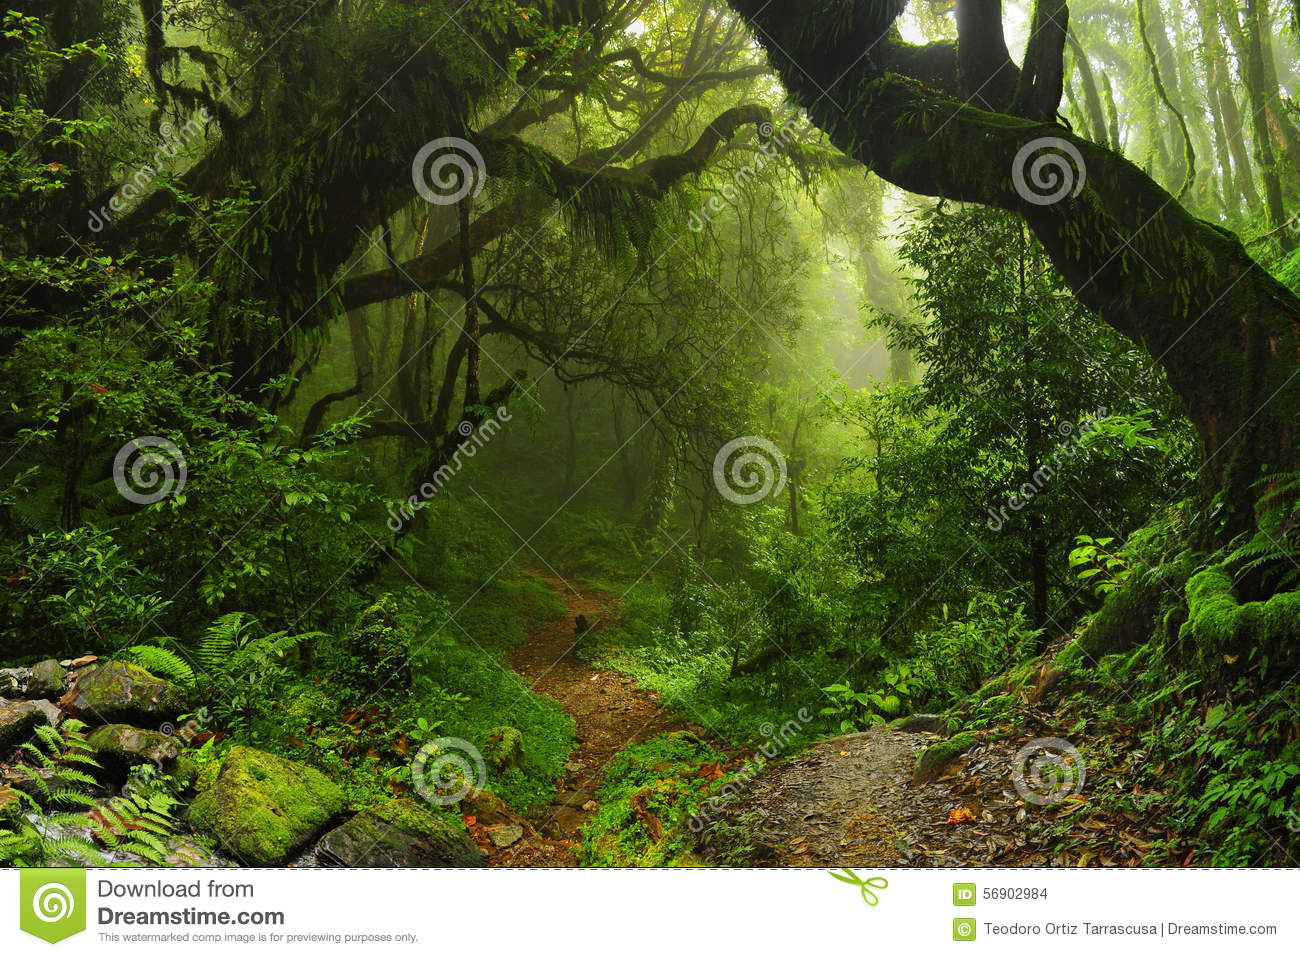 Nepal Jungle Stock Photo - Image: 56902984 Tropical Print Background